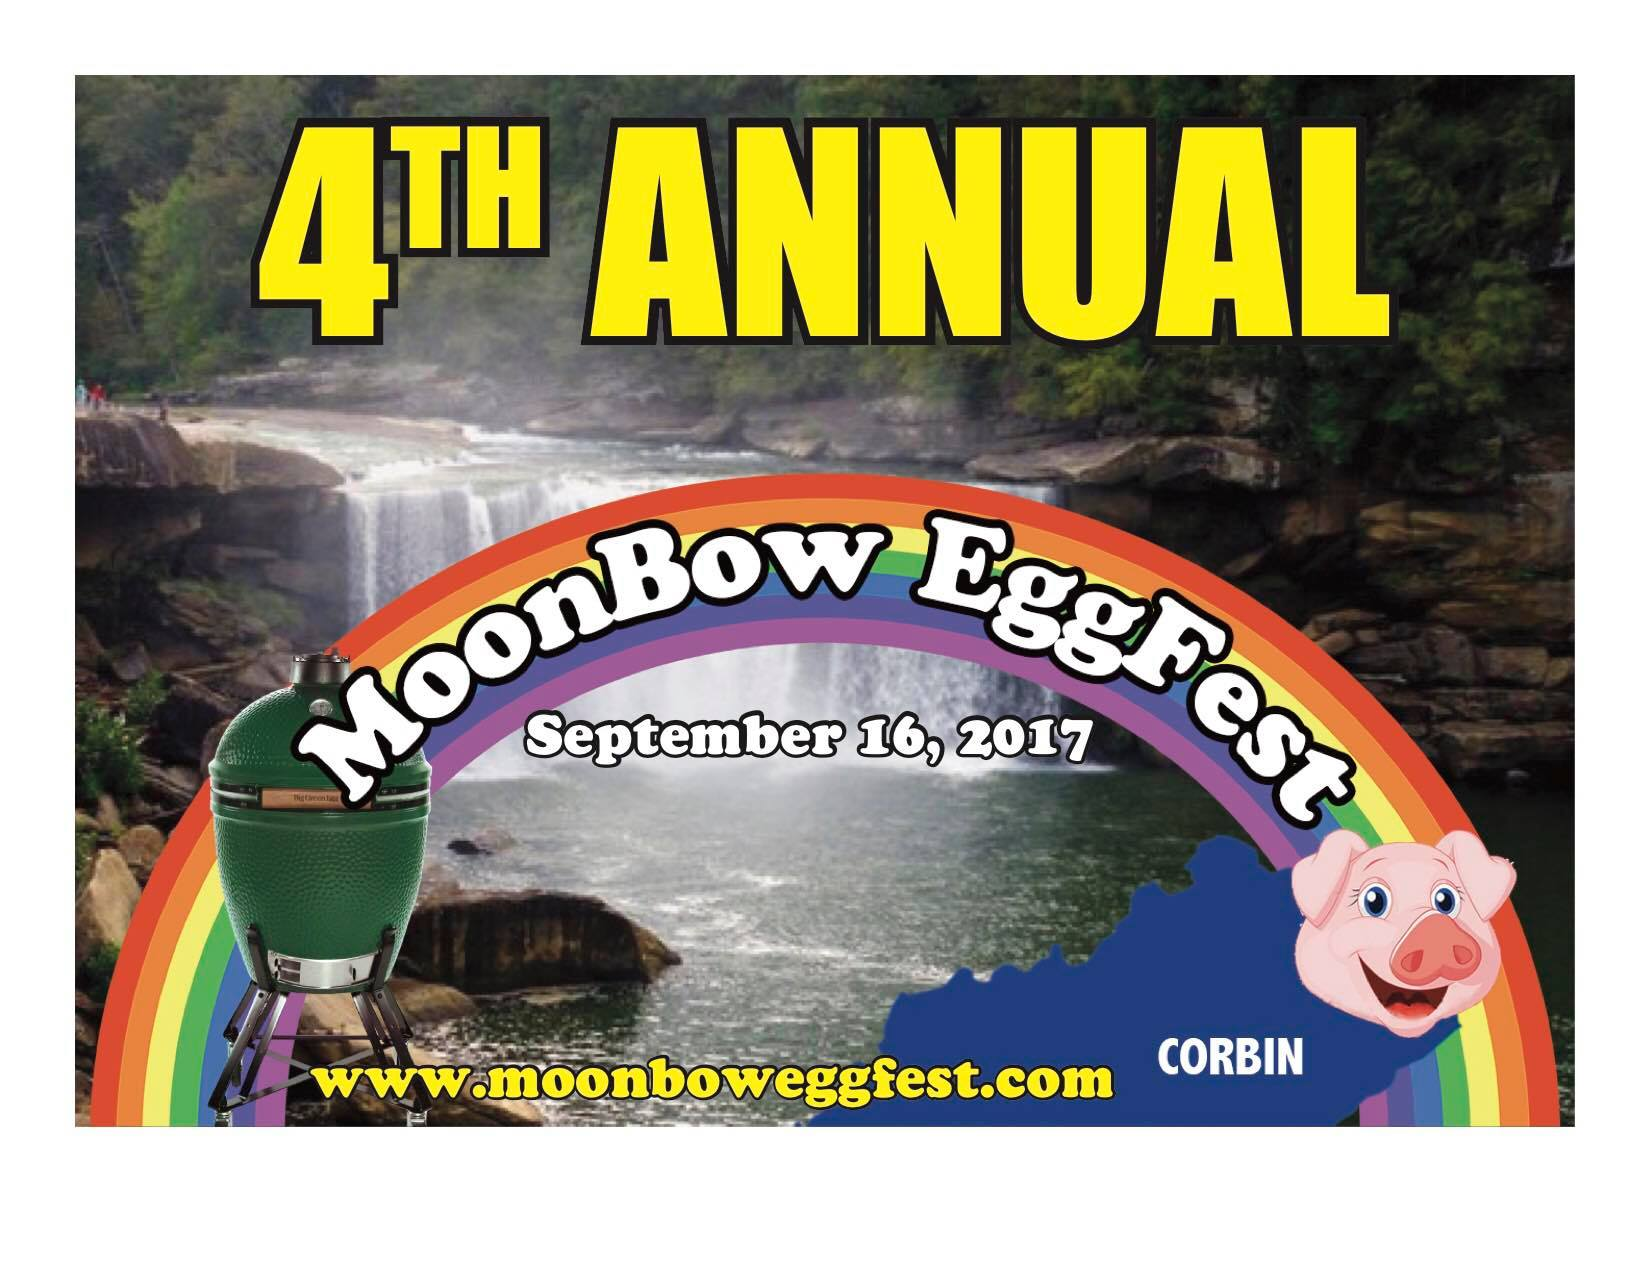 Moonbow Eggfest is an idea thought up by a couple of Big Green Egg enthusiasts in the Corbin, KY area with a goal in mind to bring other local BGE enthusiasts, as well as Eggheads in surrounding states, to Corbin, the birth place of Kentucky Fried Kitchen and the home of one of two Moonbows in the U.S.A. We hope to be able to schedule the event in conjunction with the moon phase that produces the best viewing of the Moonbow.